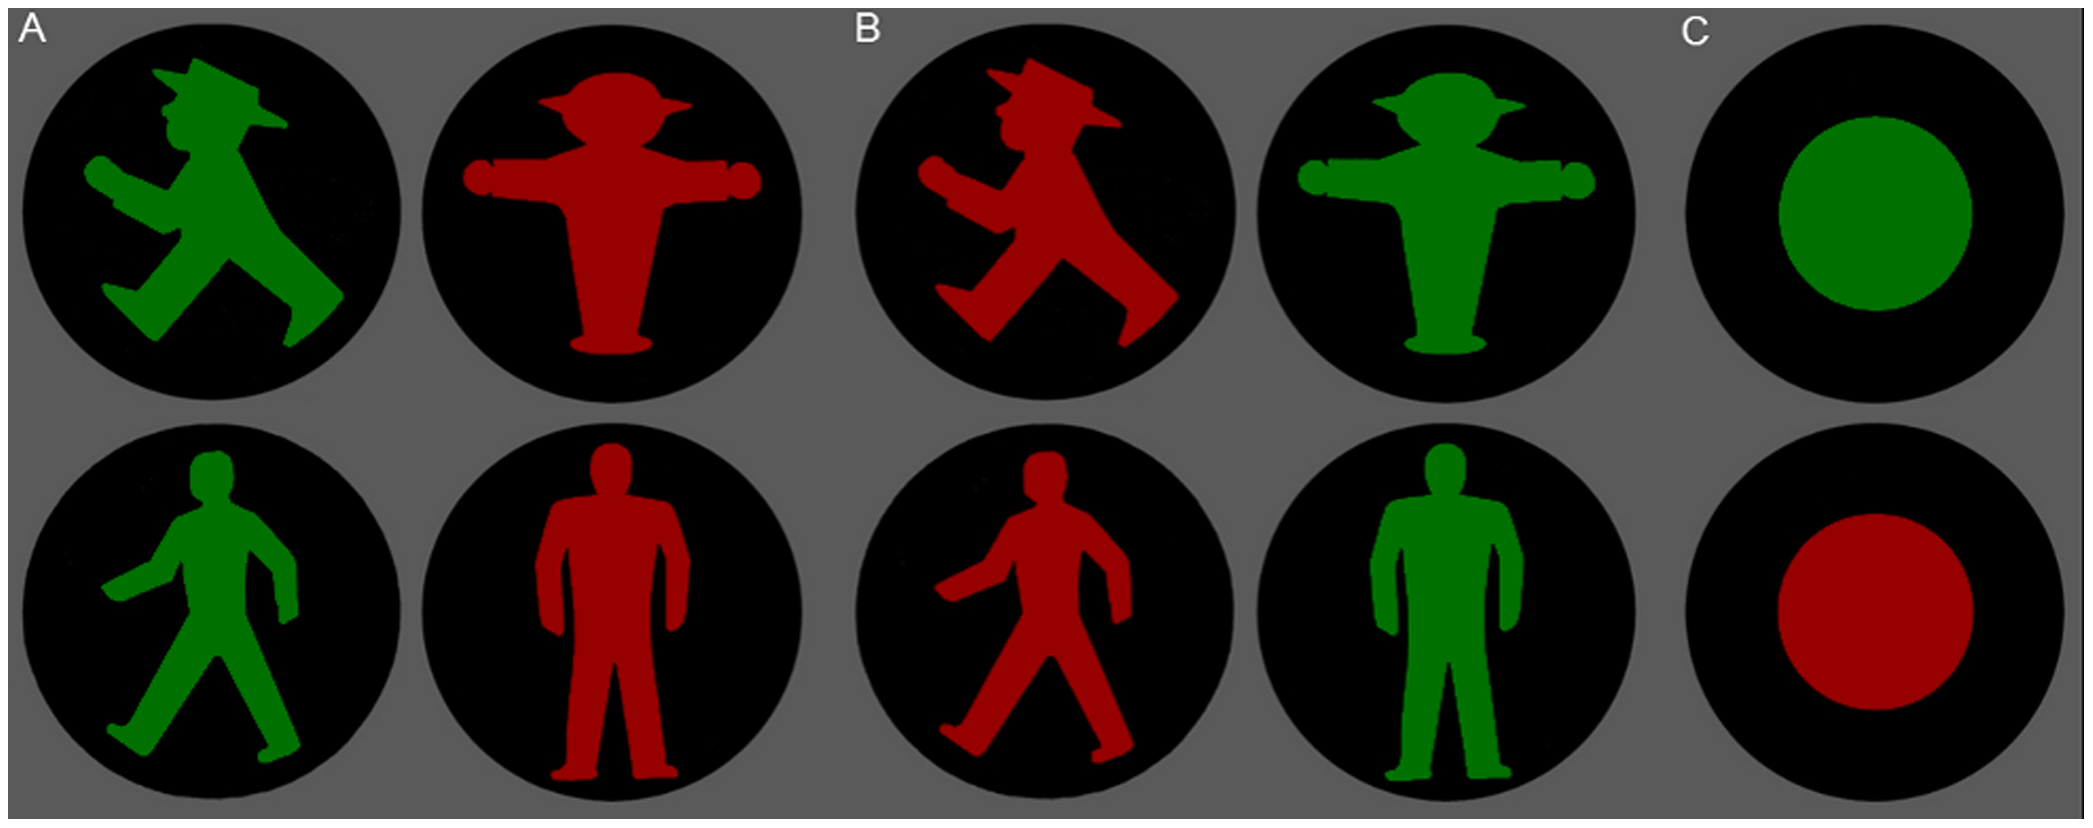 The Wildly Different Traffic Lights Of East And West